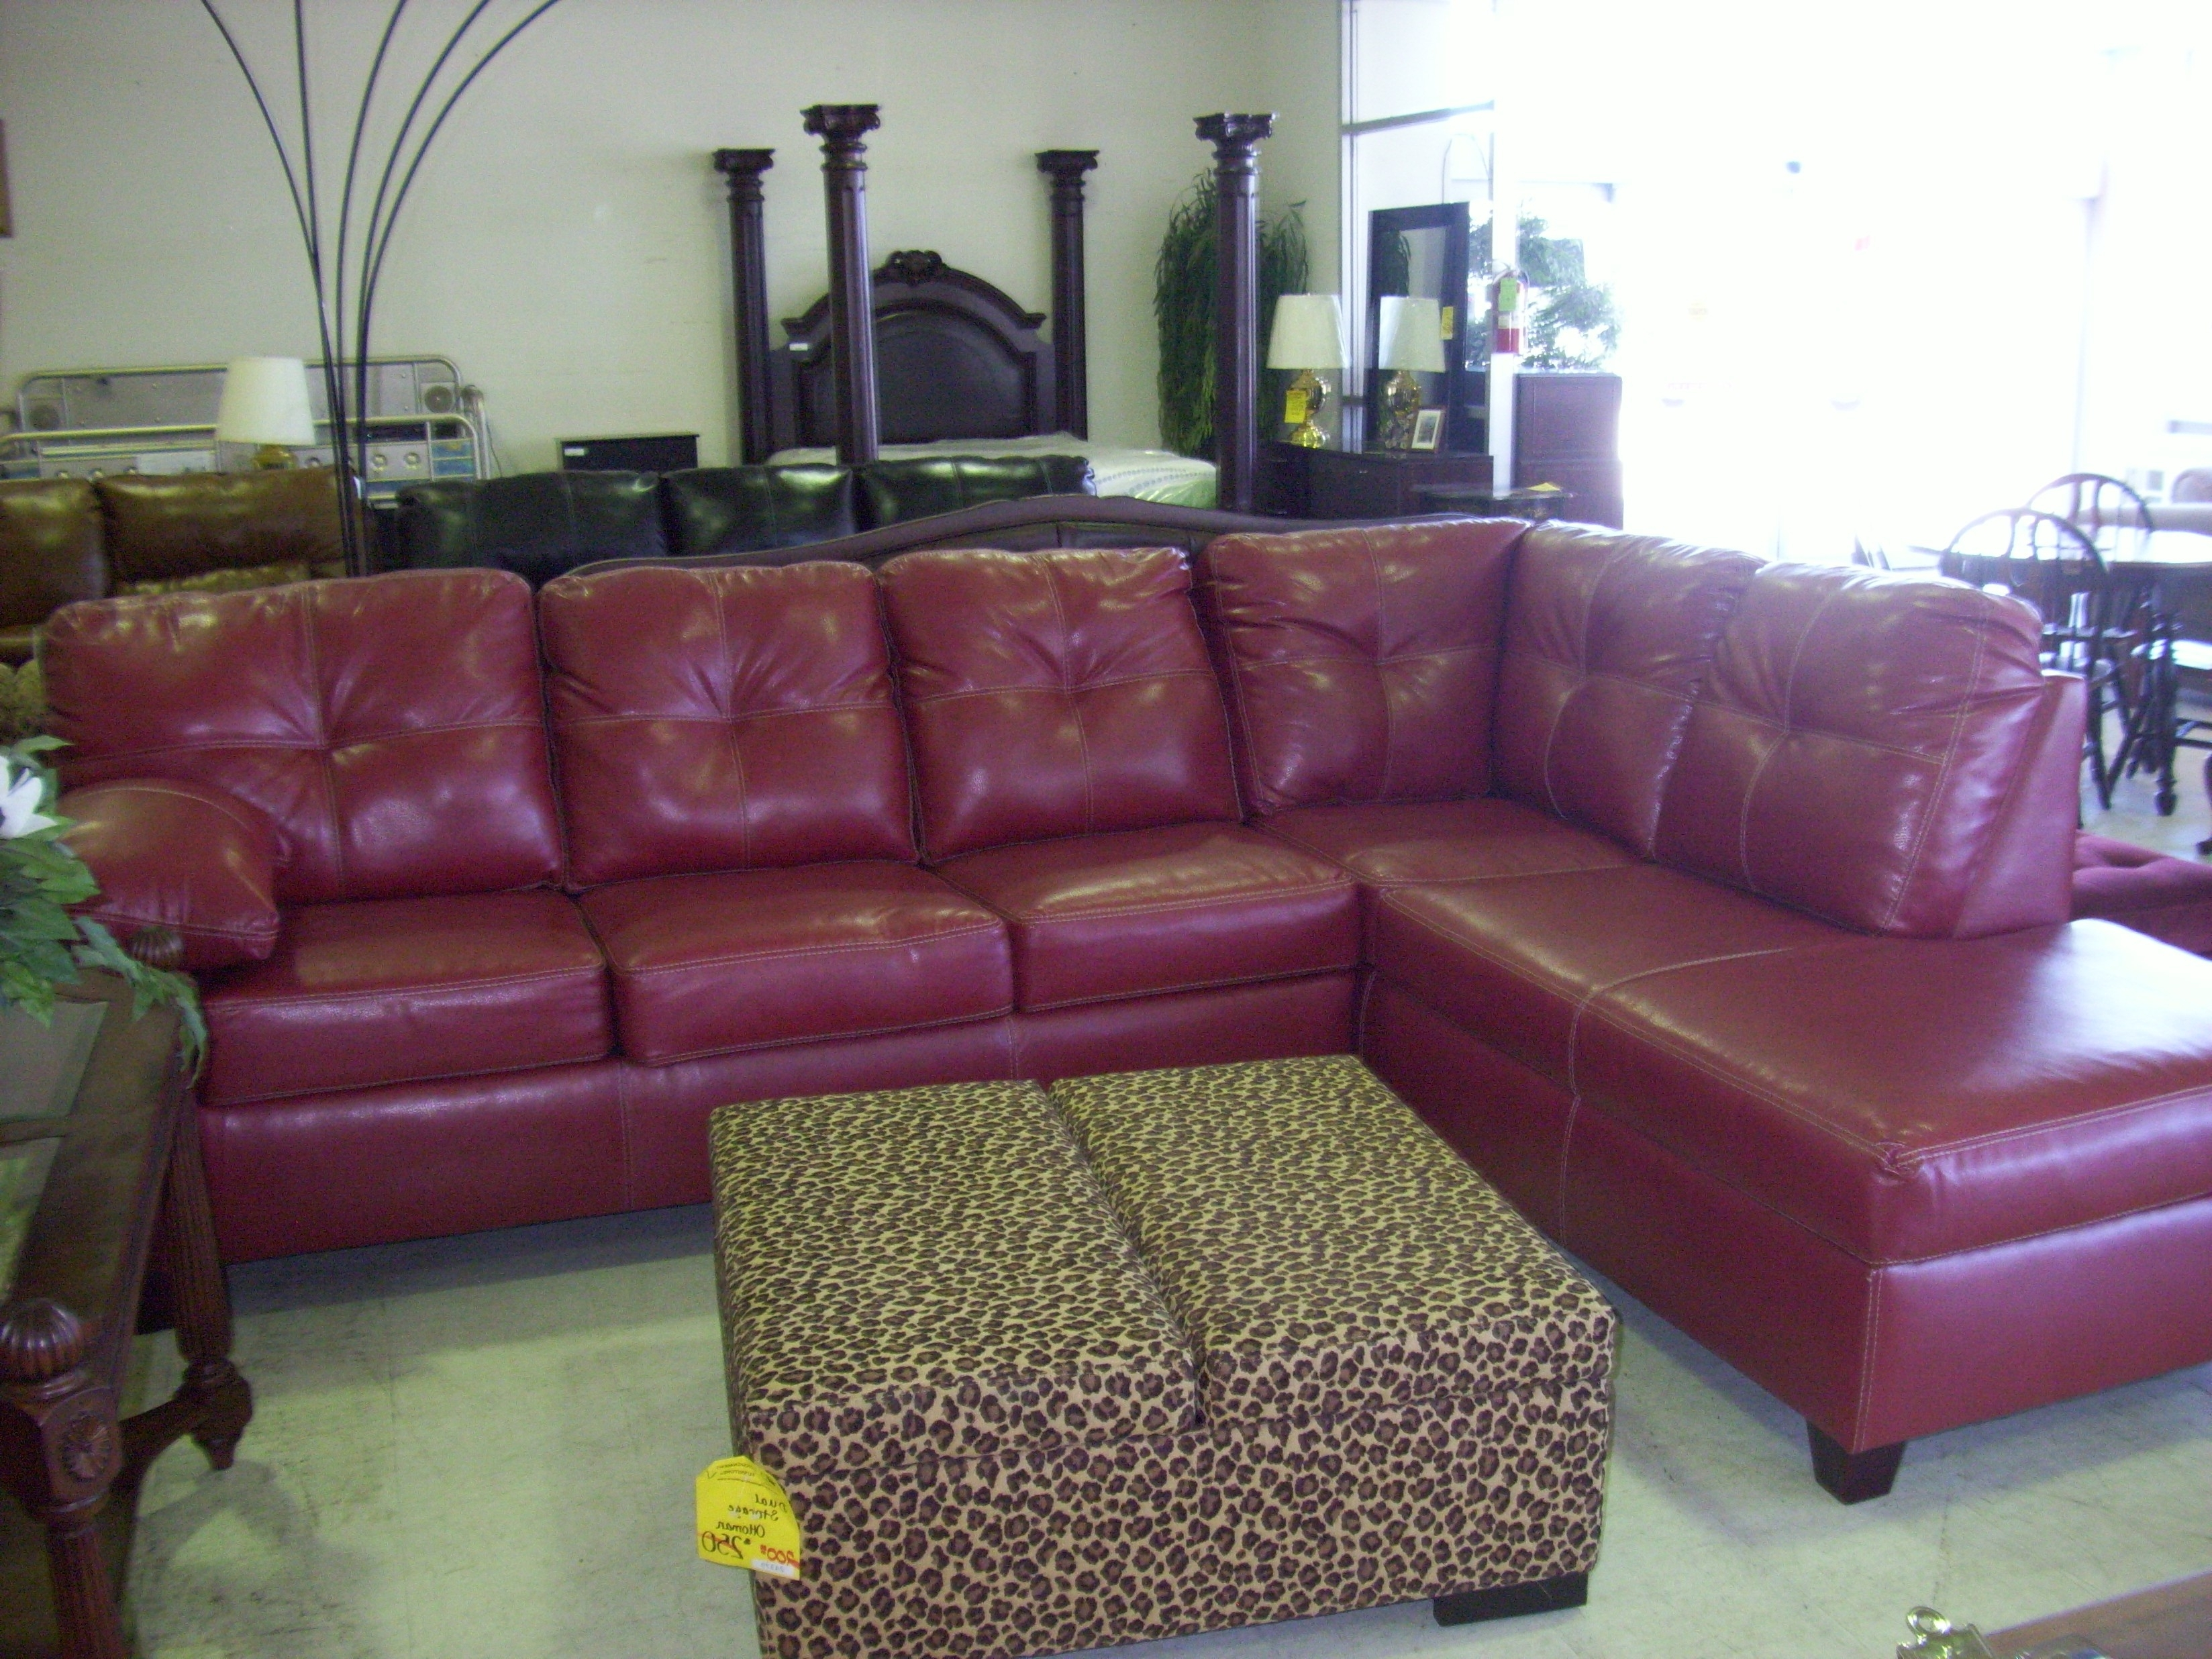 Sofas : Grey Sectional Couch Black Leather Couch Distressed Regarding Latest Red Leather Sectional Sofas With Recliners (View 16 of 20)